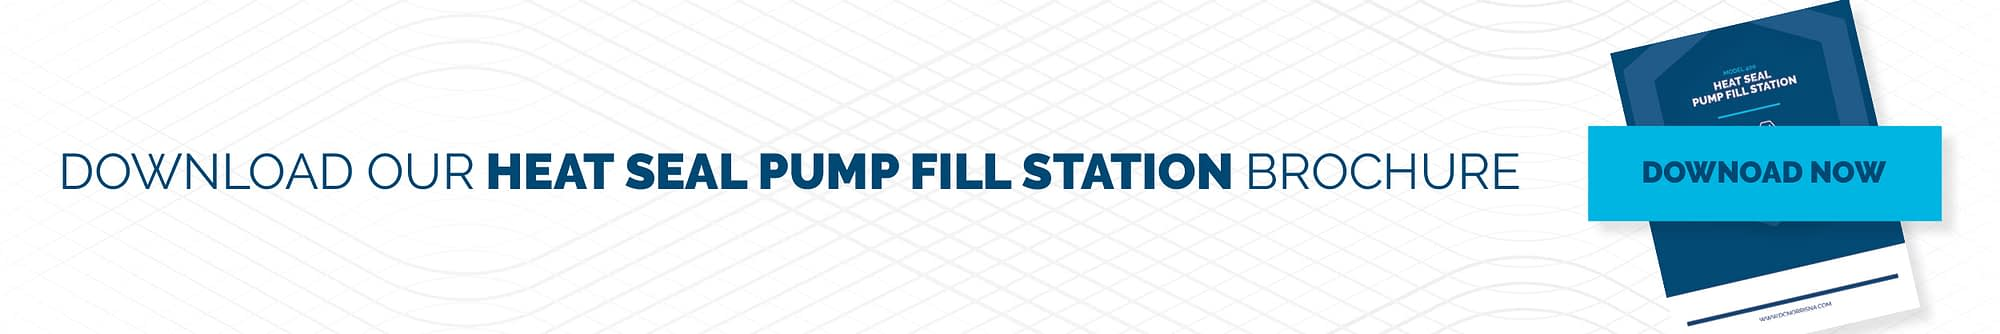 download the DC Norris North America Heat Seal Pump Fill Station